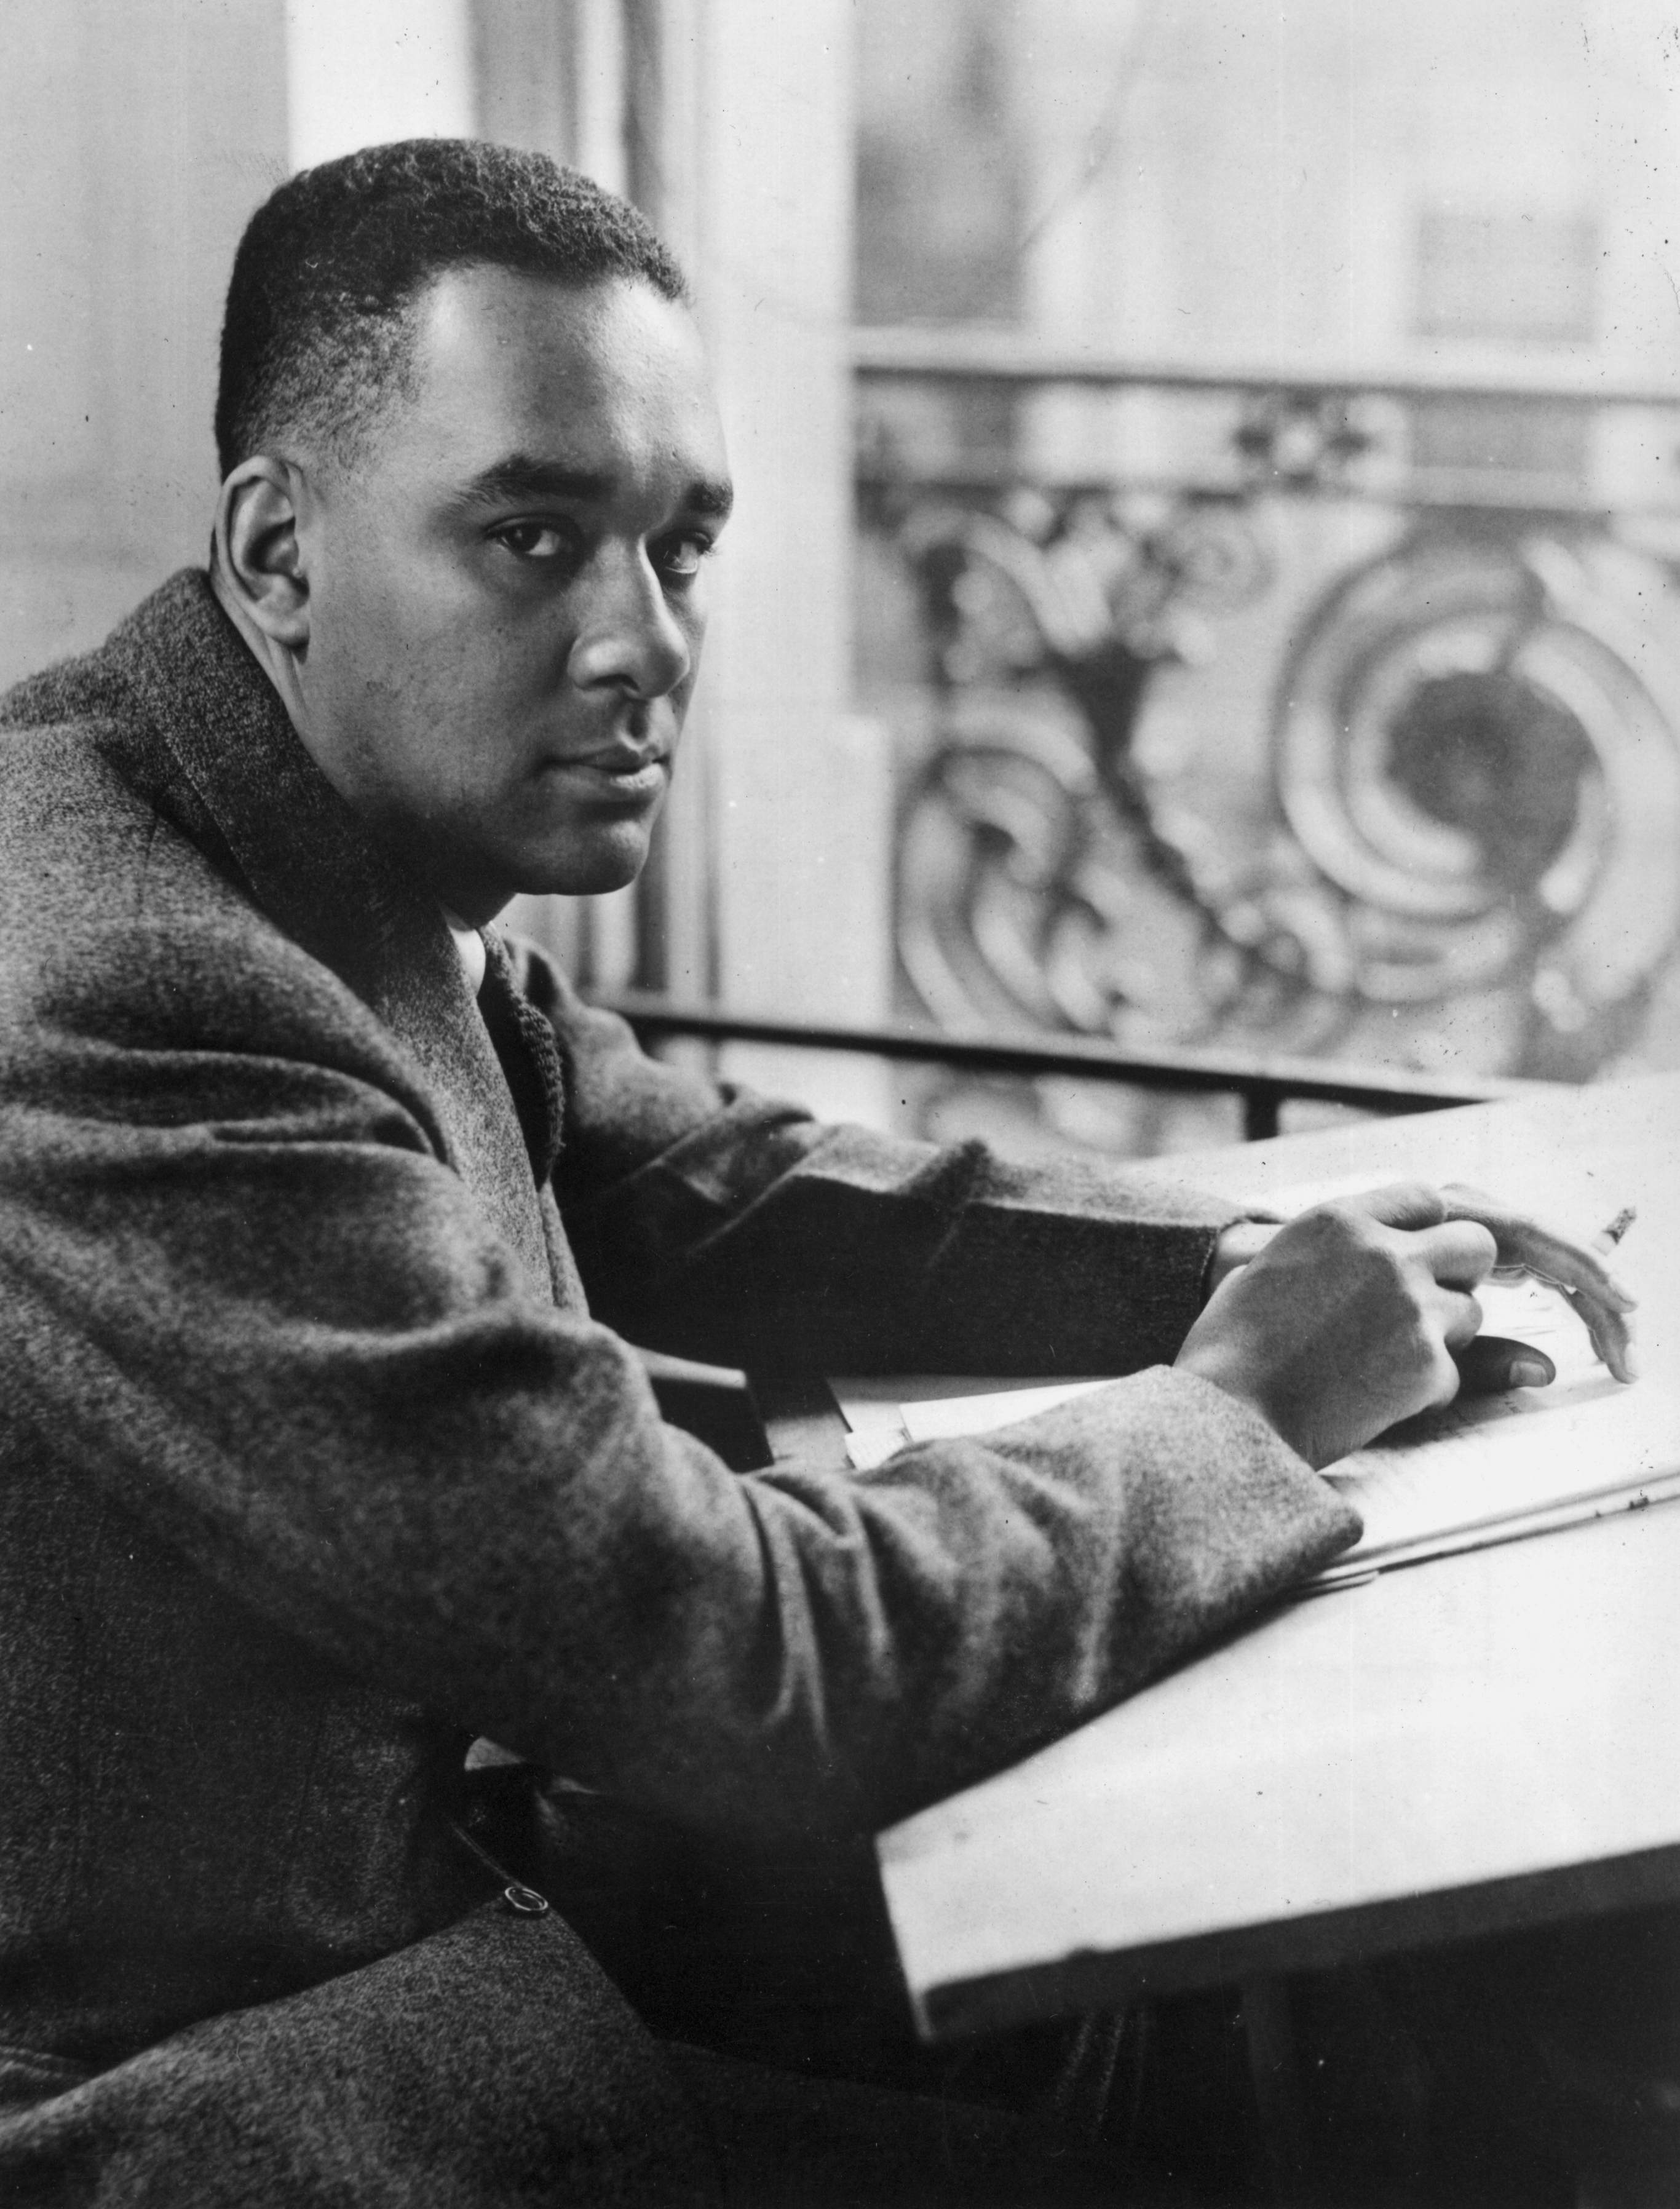 """richard wrights novel native son essay Each week in bookends, two writers take on questions about the world of books this week, ayana mathis and pankaj mishra discuss james baldwin's reaction to richard wright's """"native son."""